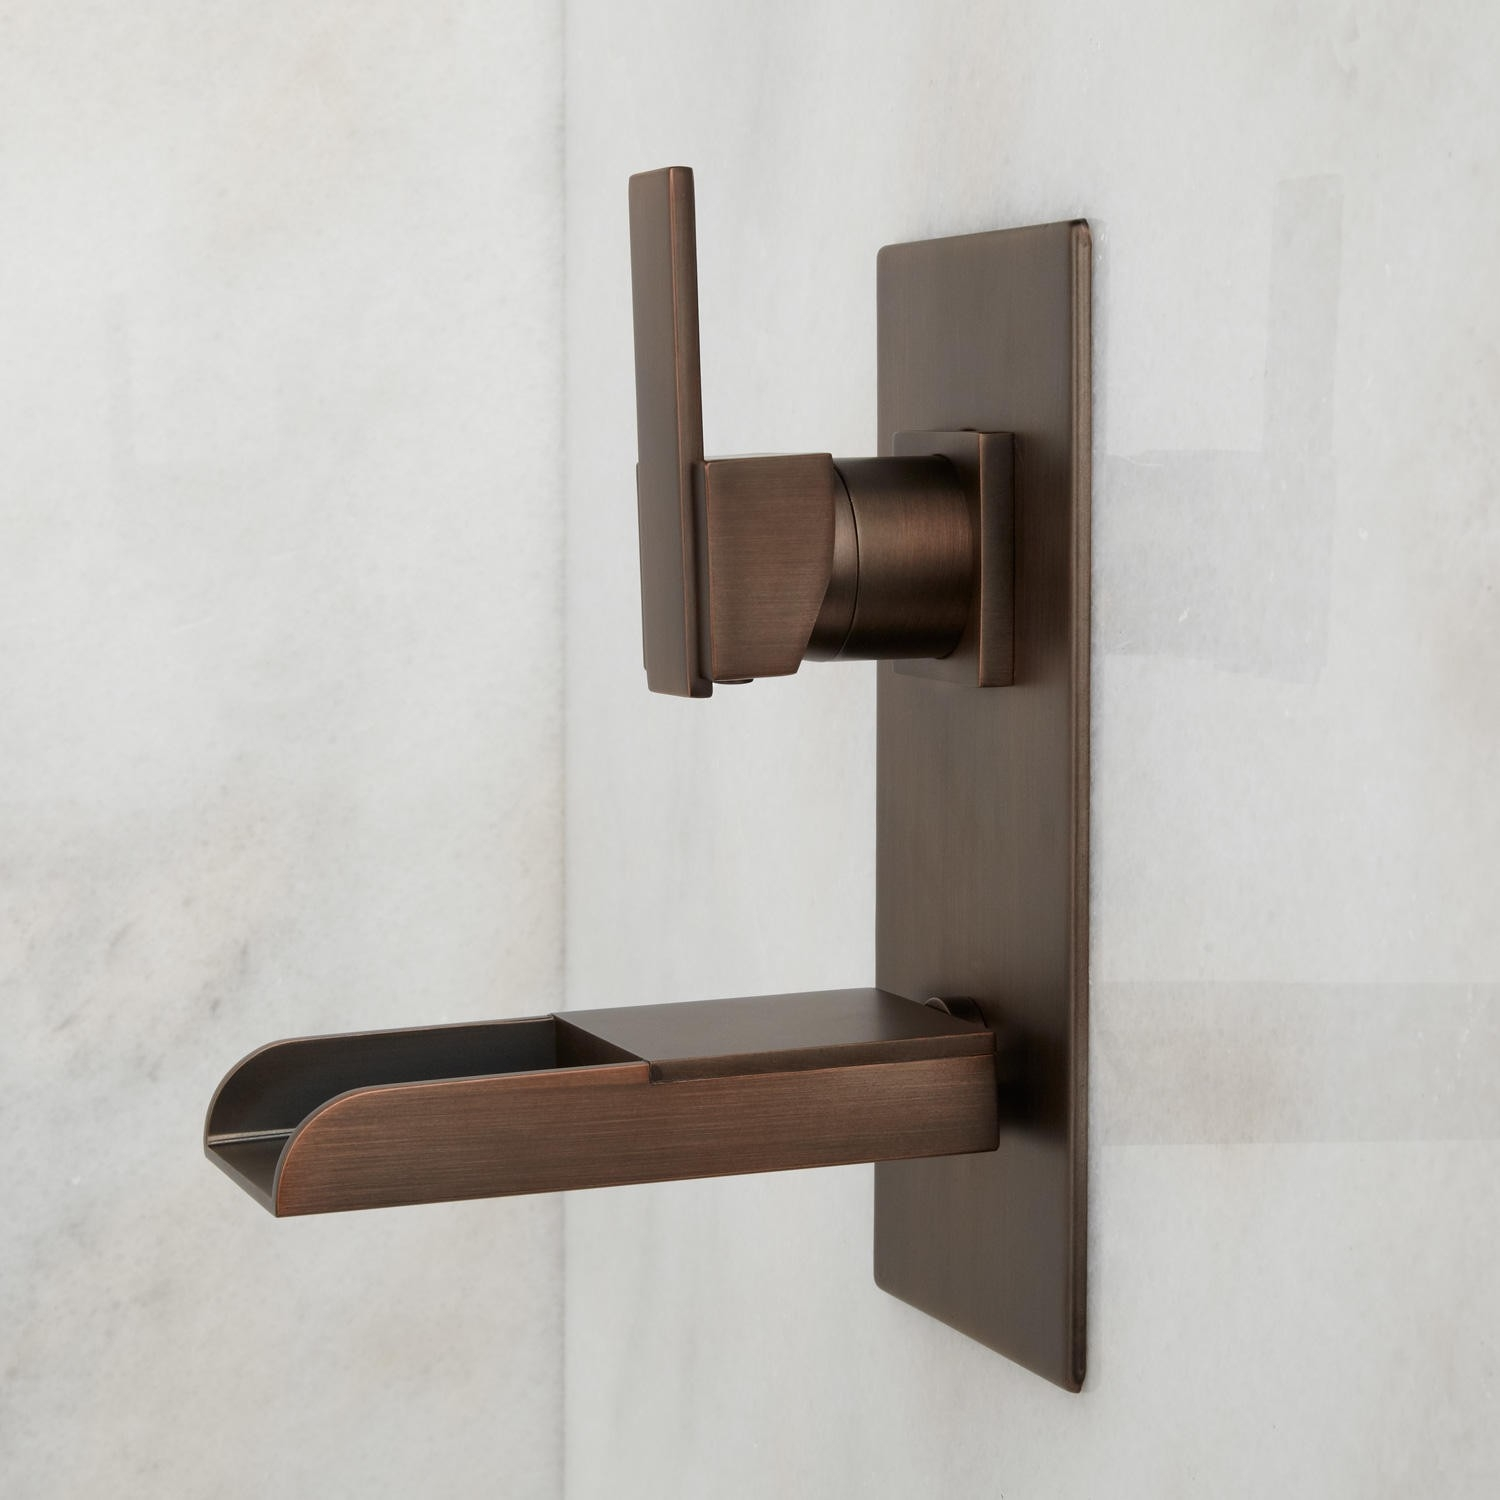 Ideas, kohler wall mount faucet with soap dish kohler wall mount faucet with soap dish bathroom cool wall mounted faucet for elegant bathroom faucets 1500 x 1500  .